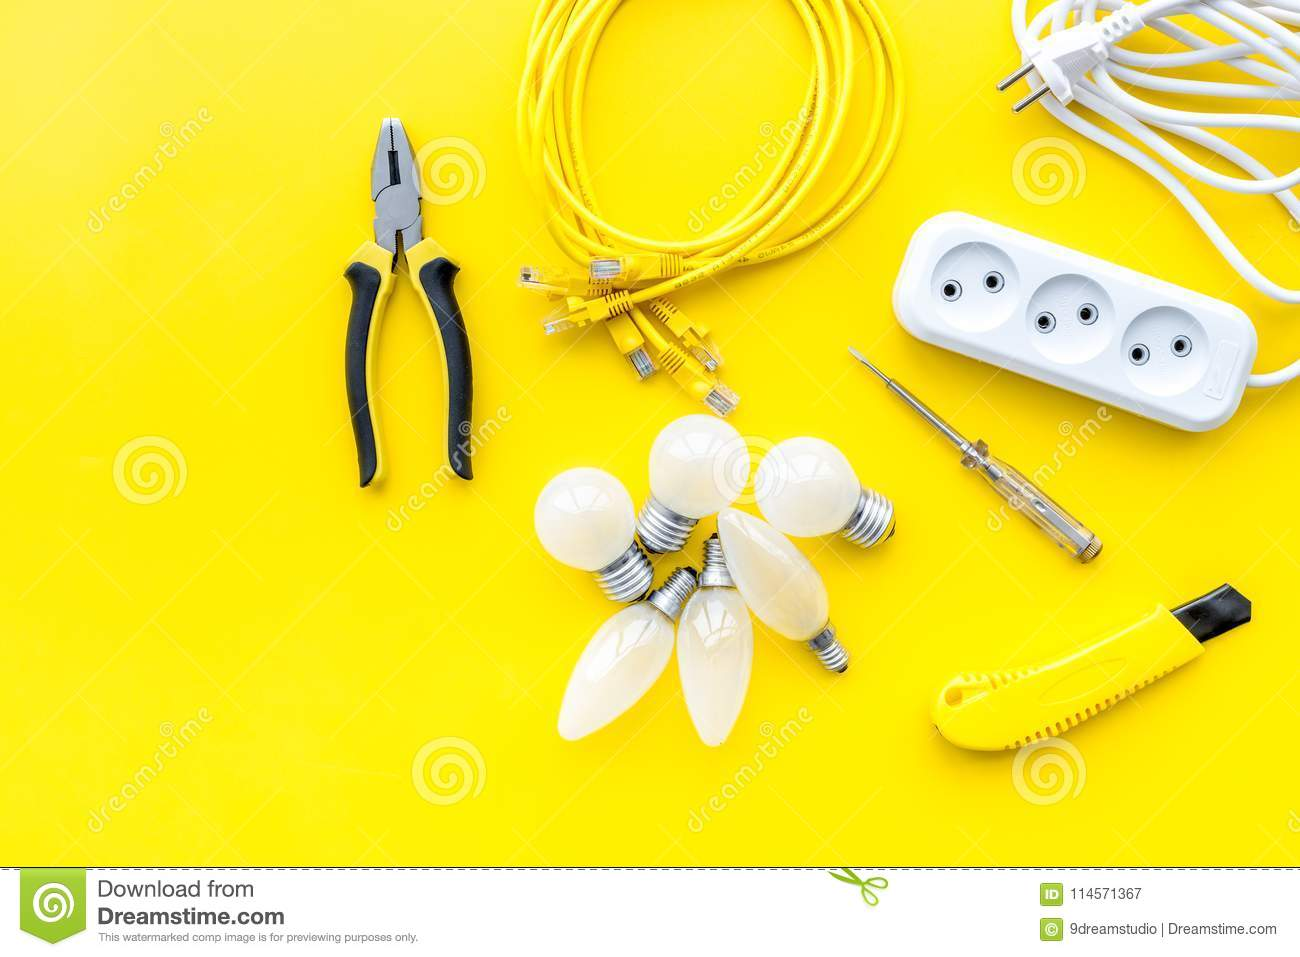 Electrical Accessories At Home Bulbs Socket Outlet Cabel On Yellow Background Top View Copy Space Stock Image Image Of Fixing Mockup 114571367